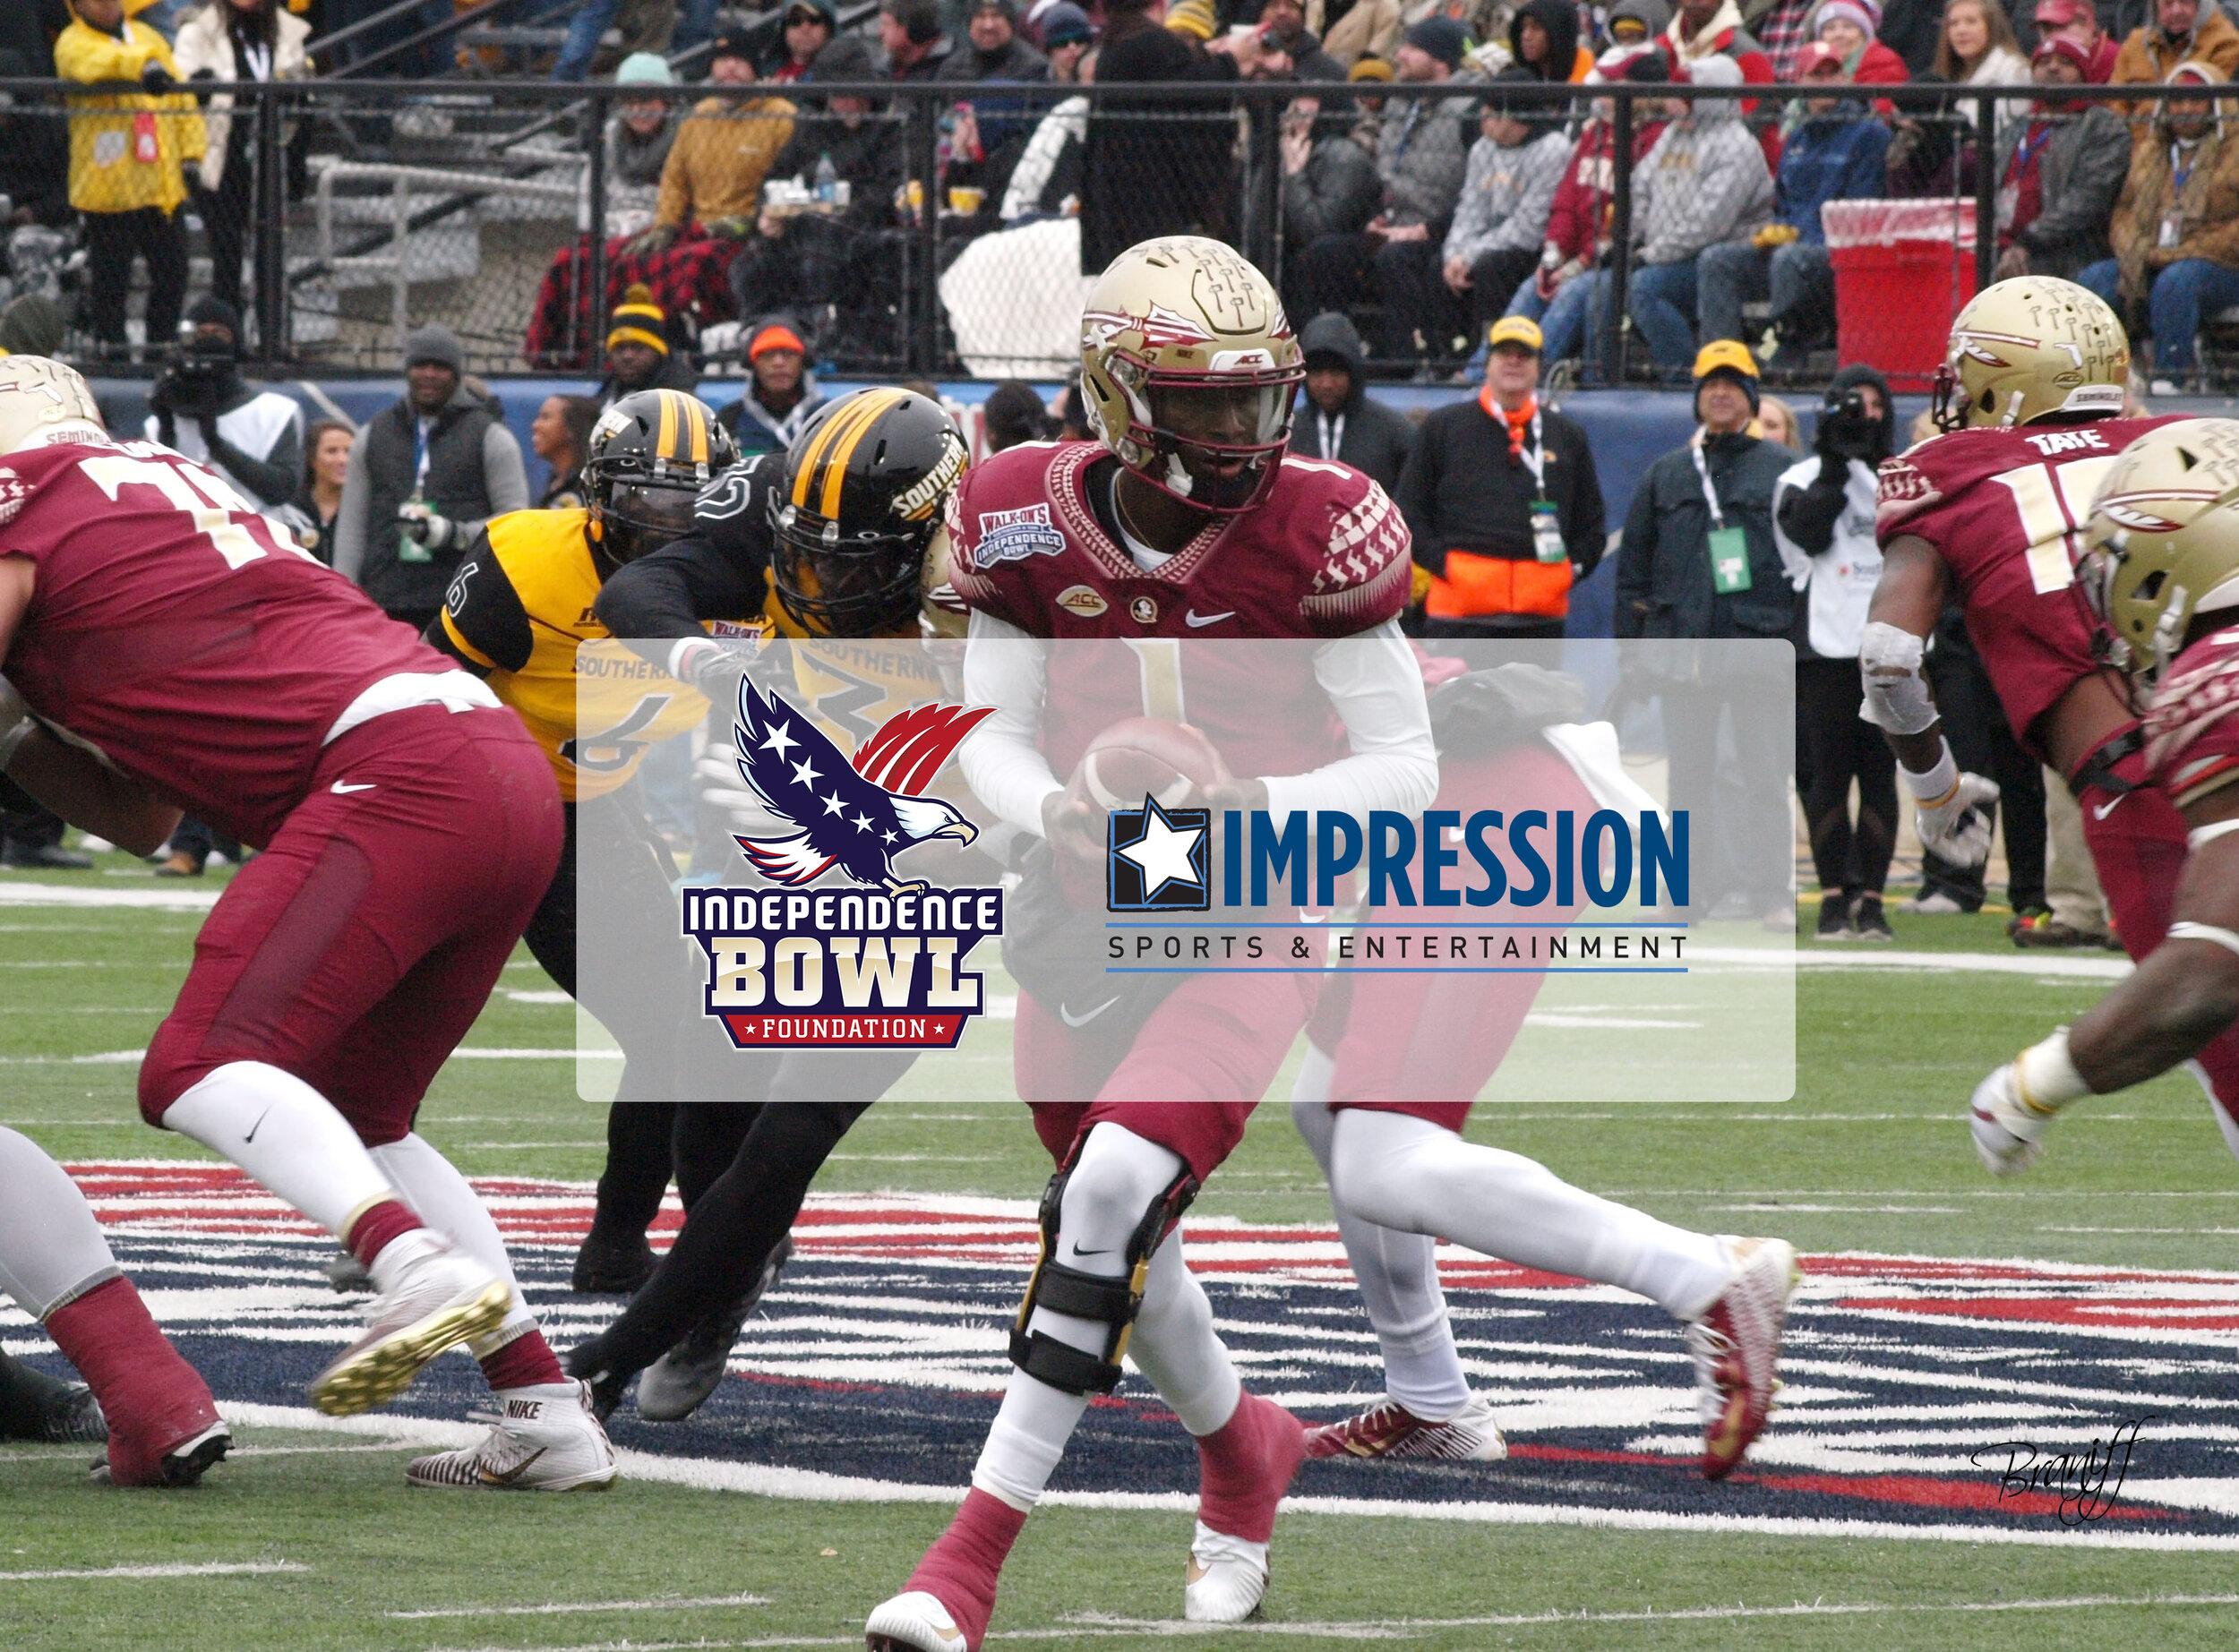 Independence Bowl Foundation Partners with Impression Sports to Lead Title Sponsor Search